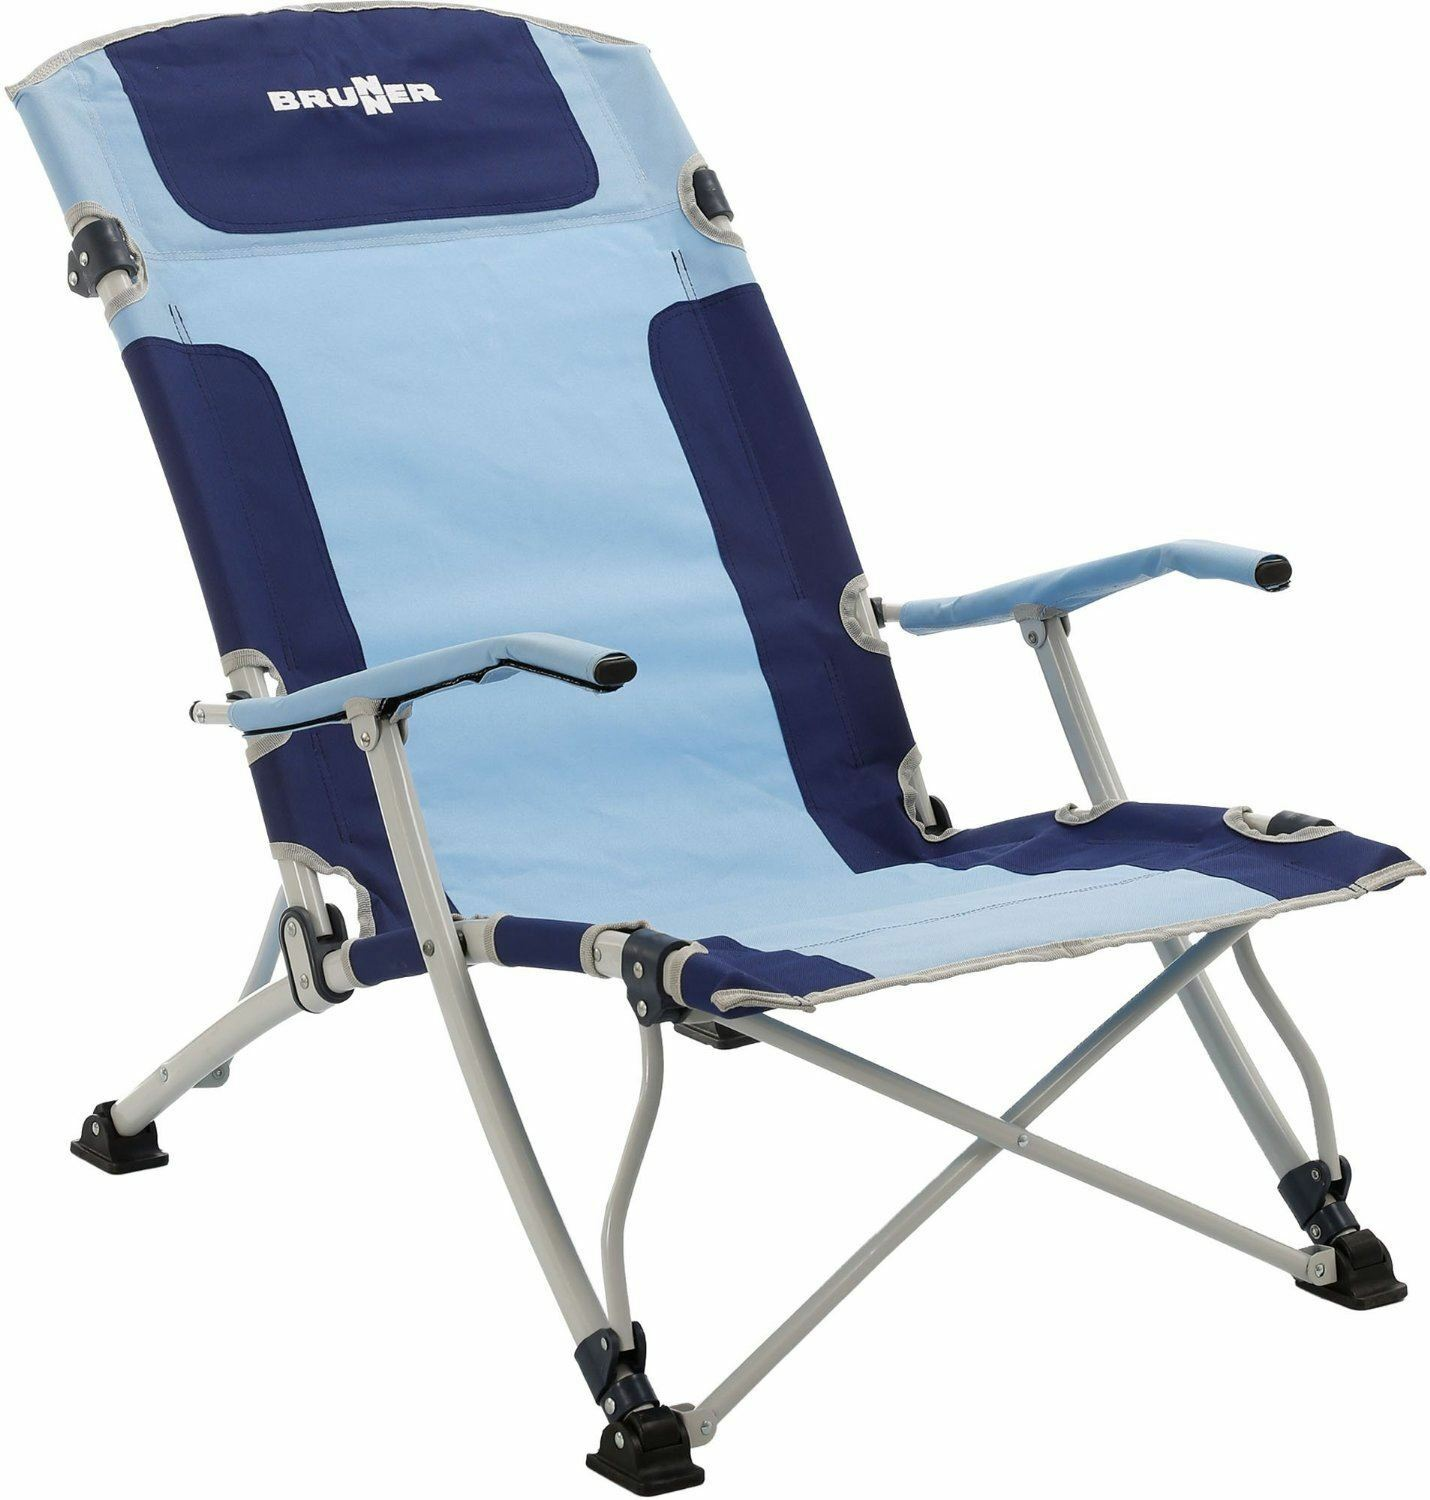 Brunner Bula XL Low Camping Beach Chair 0404149N.C57